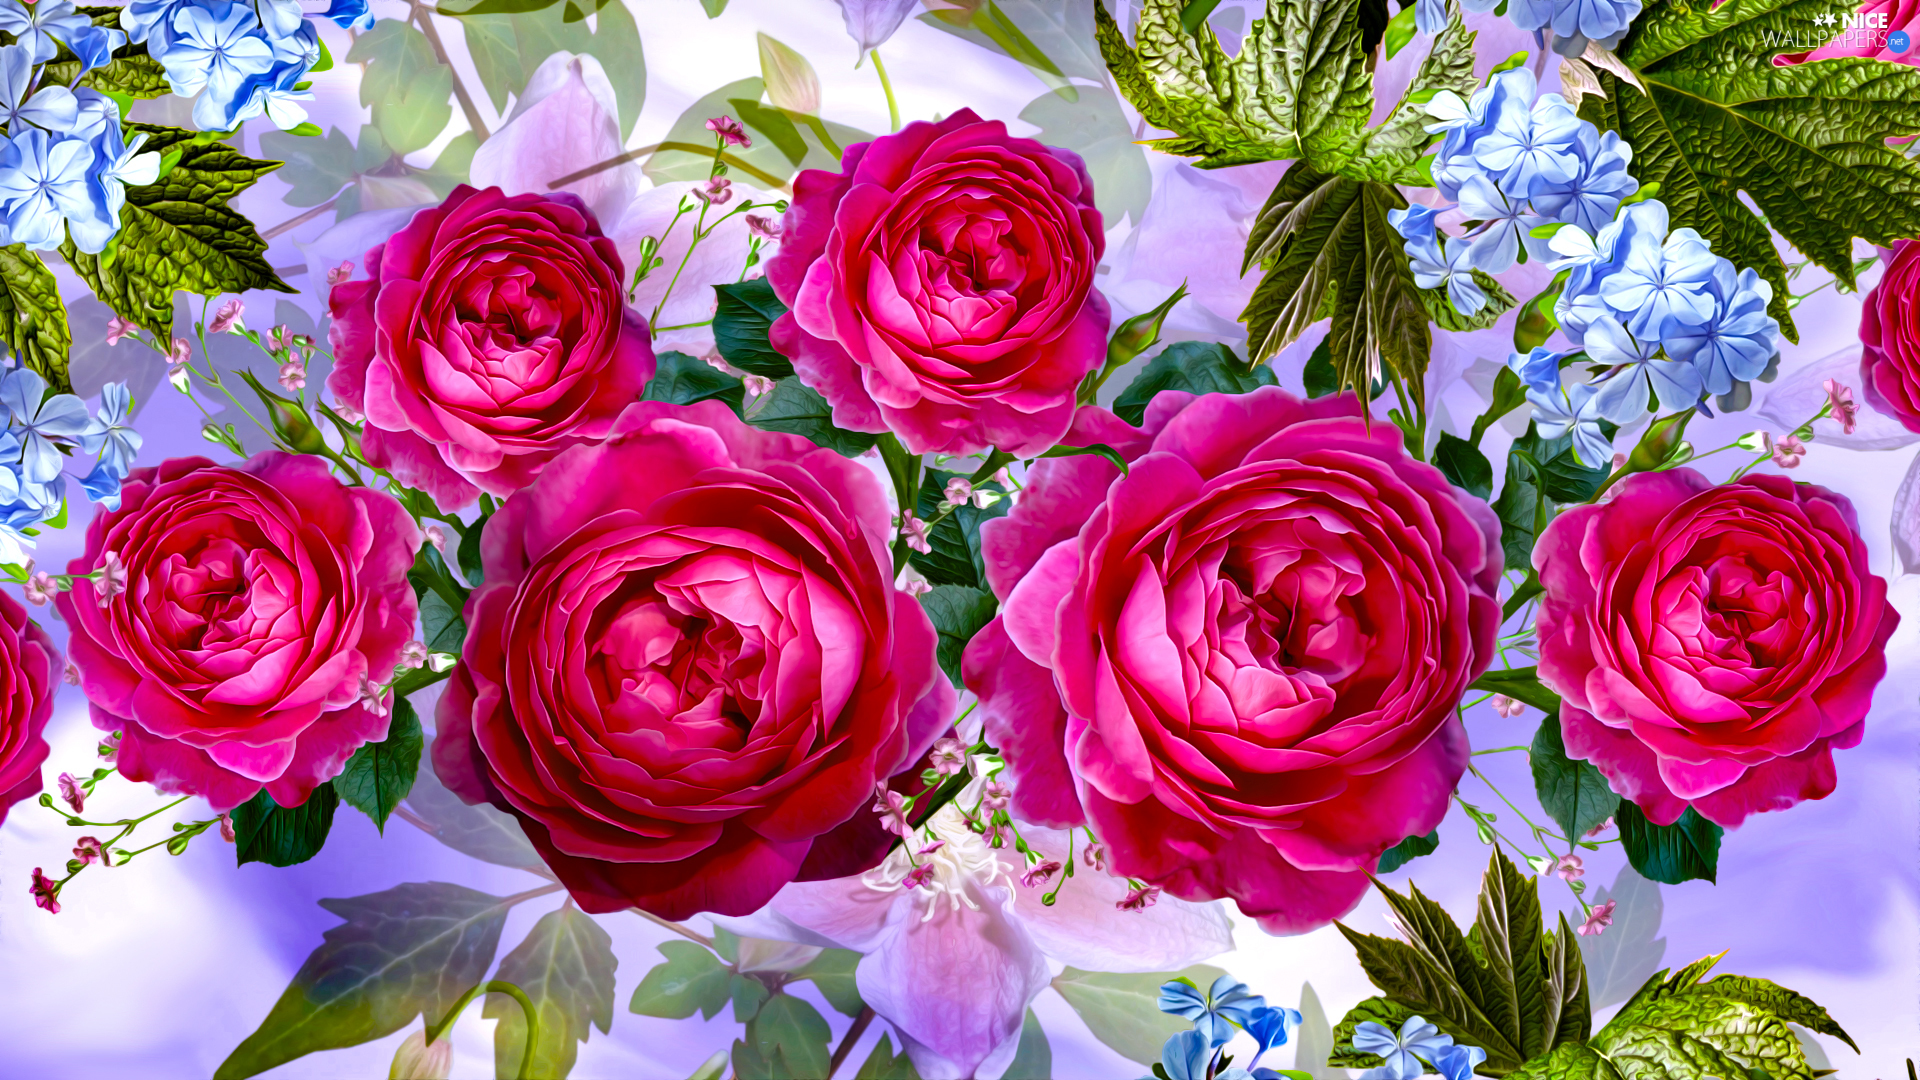 roses, graphics, developed, Pink, Flowers